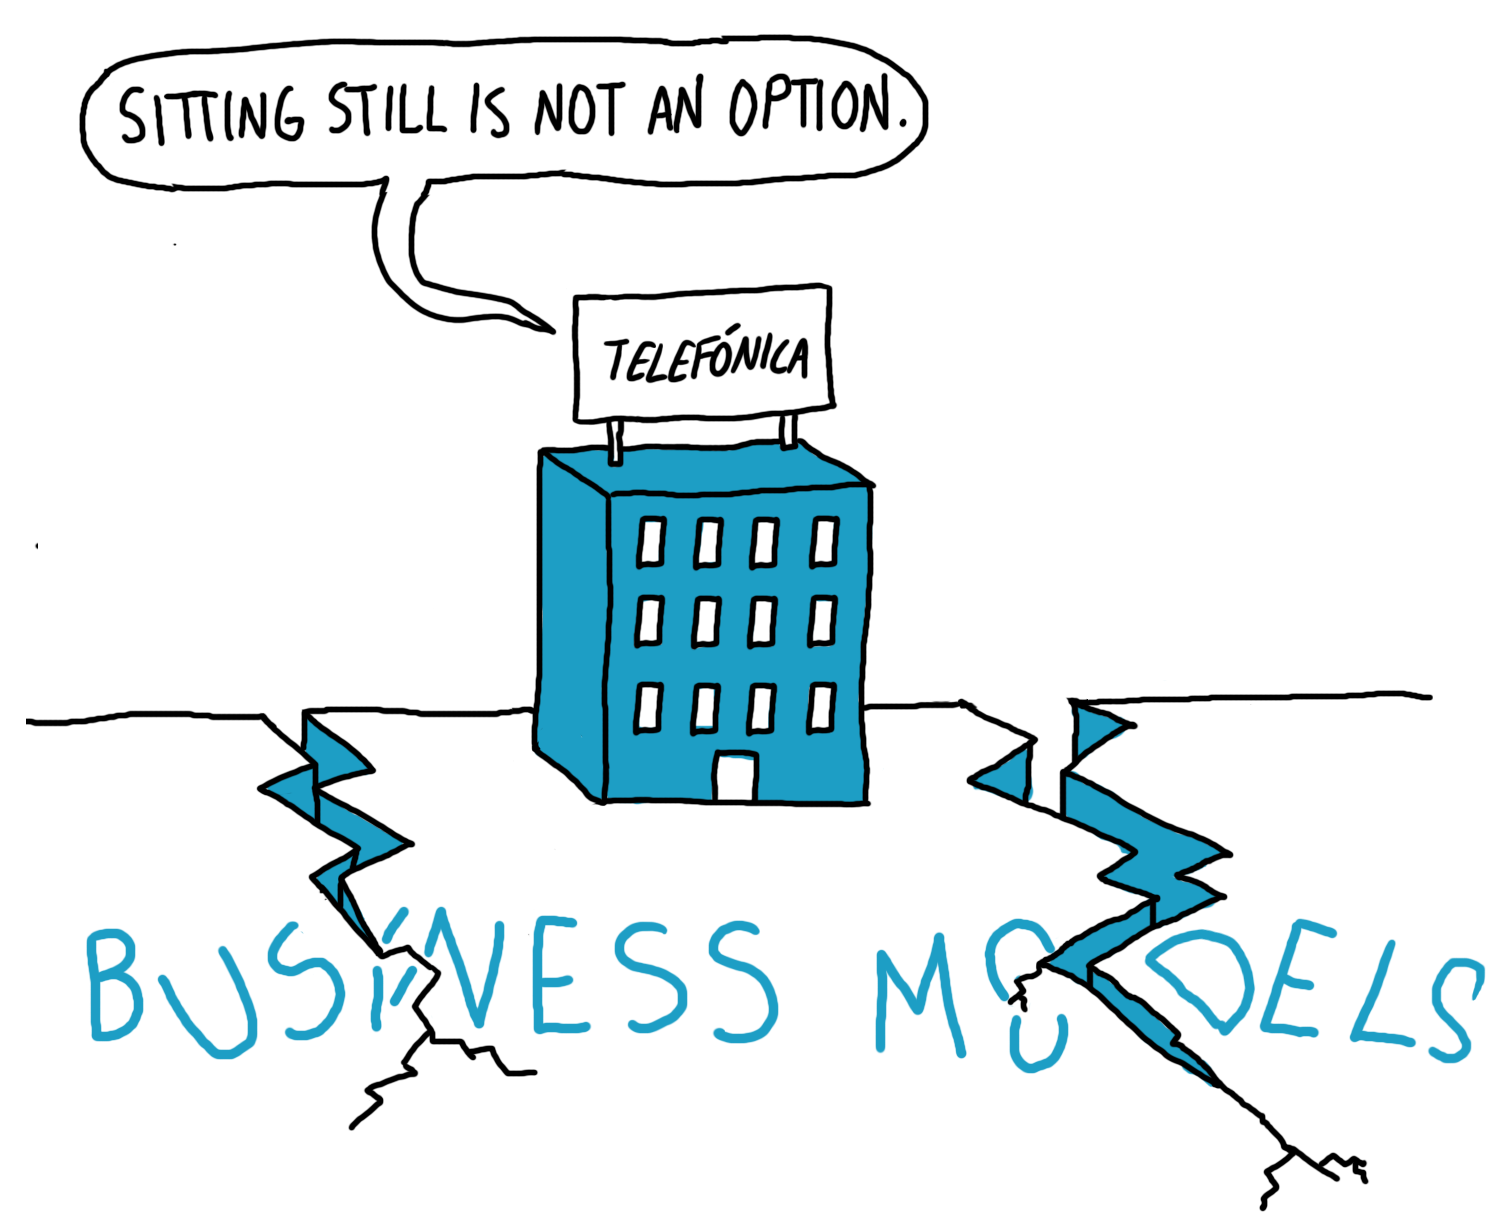 Disrupted business model cartoon